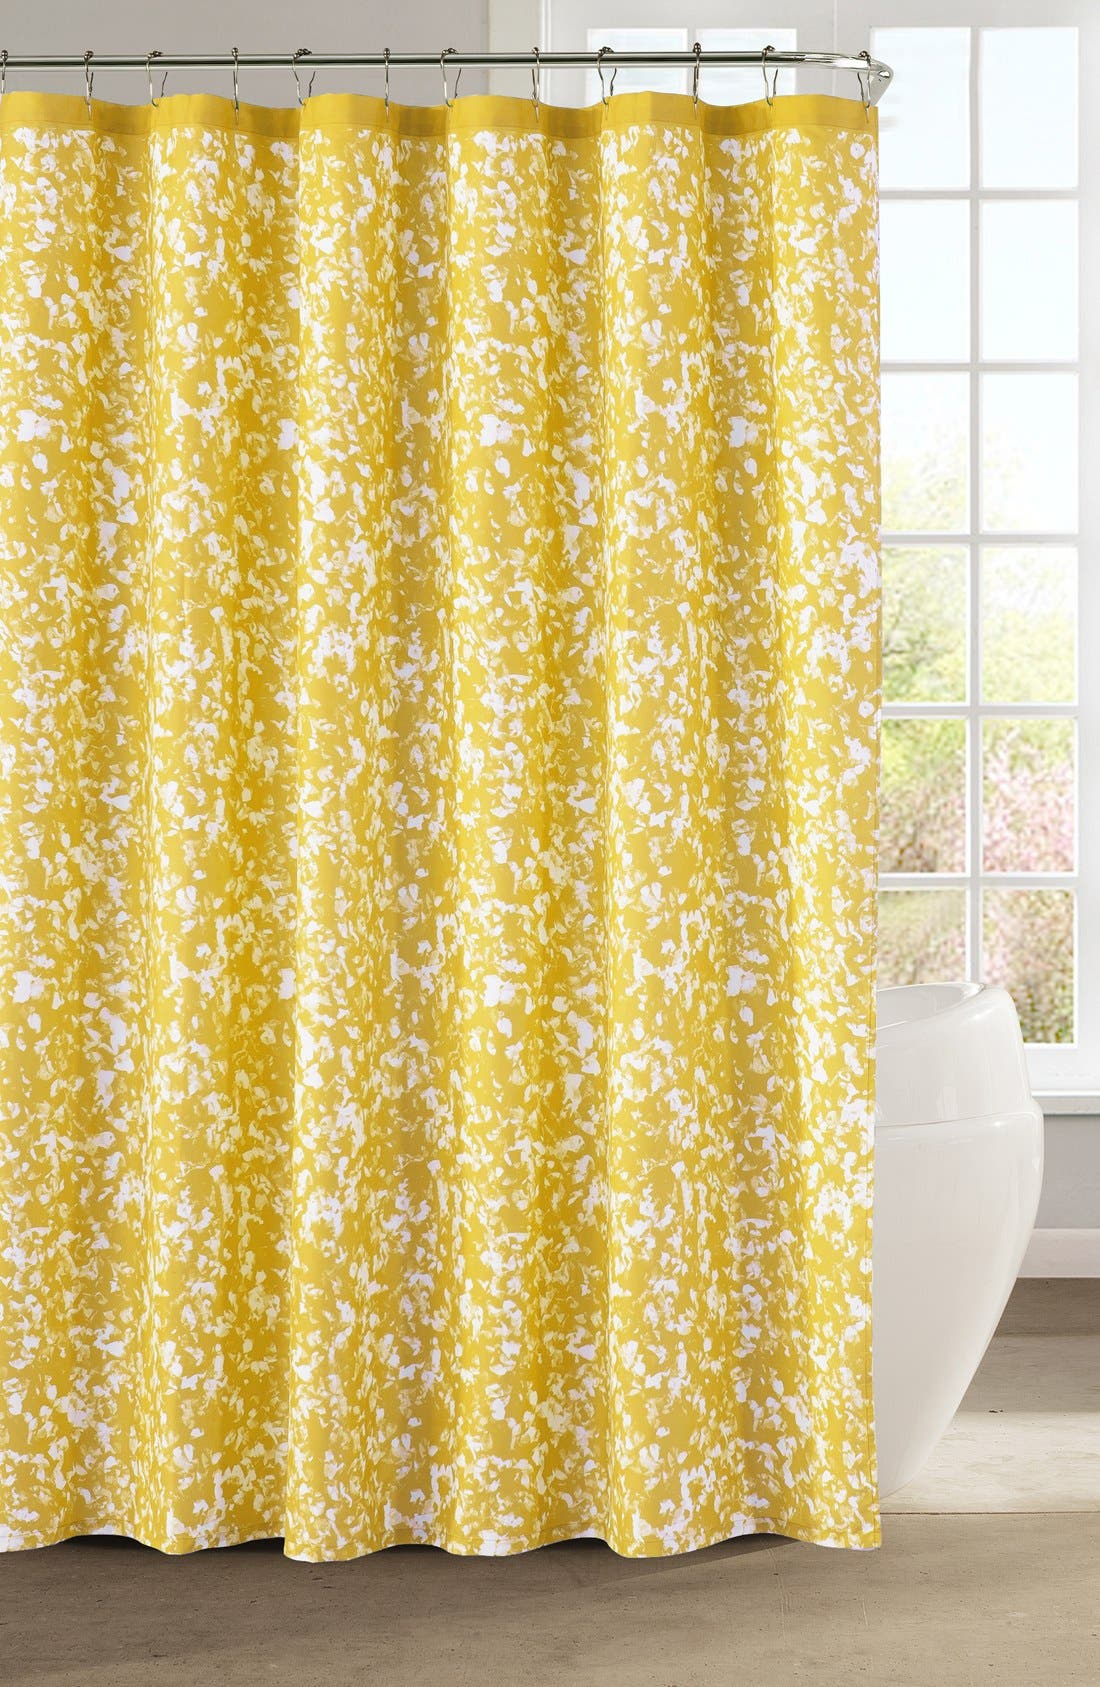 Yellow and black shower curtain - Yellow And Black Shower Curtain 19